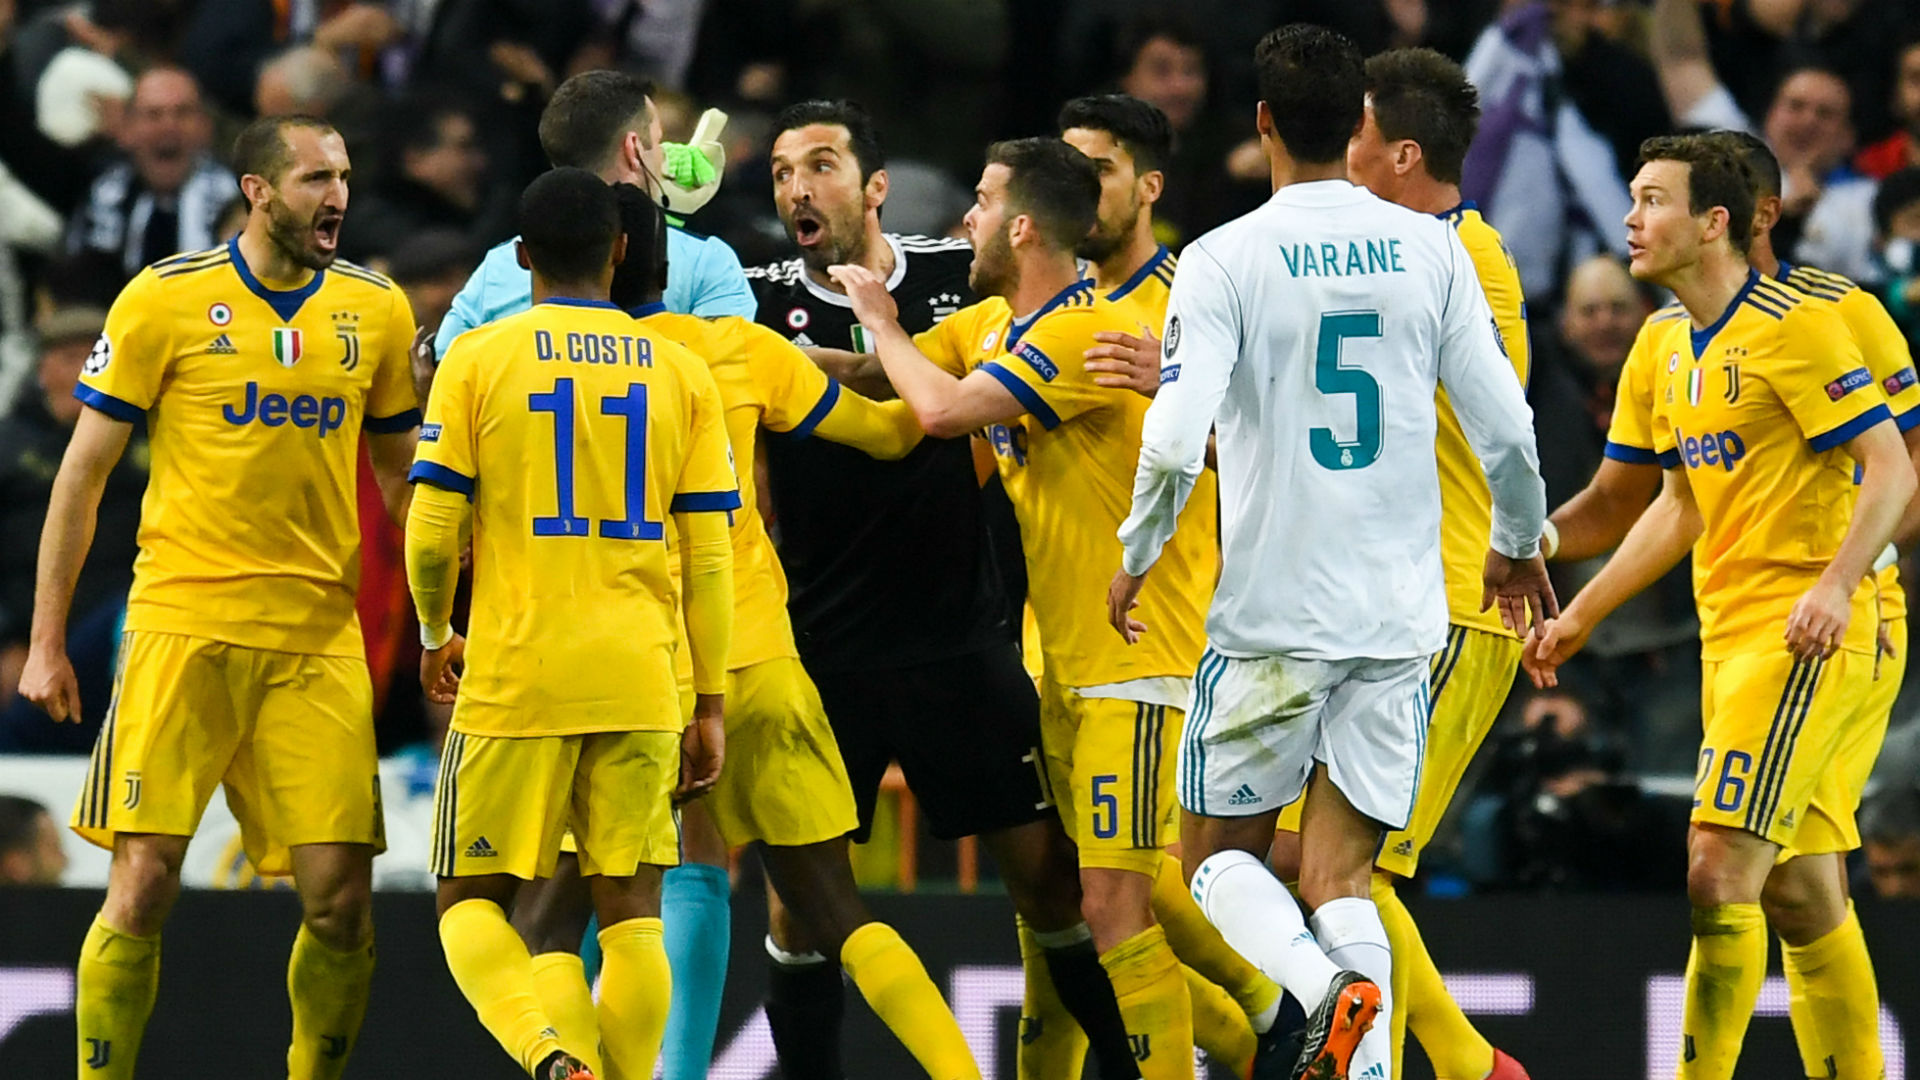 furious juventus confronted real madrid players match officials in tunnel goal com